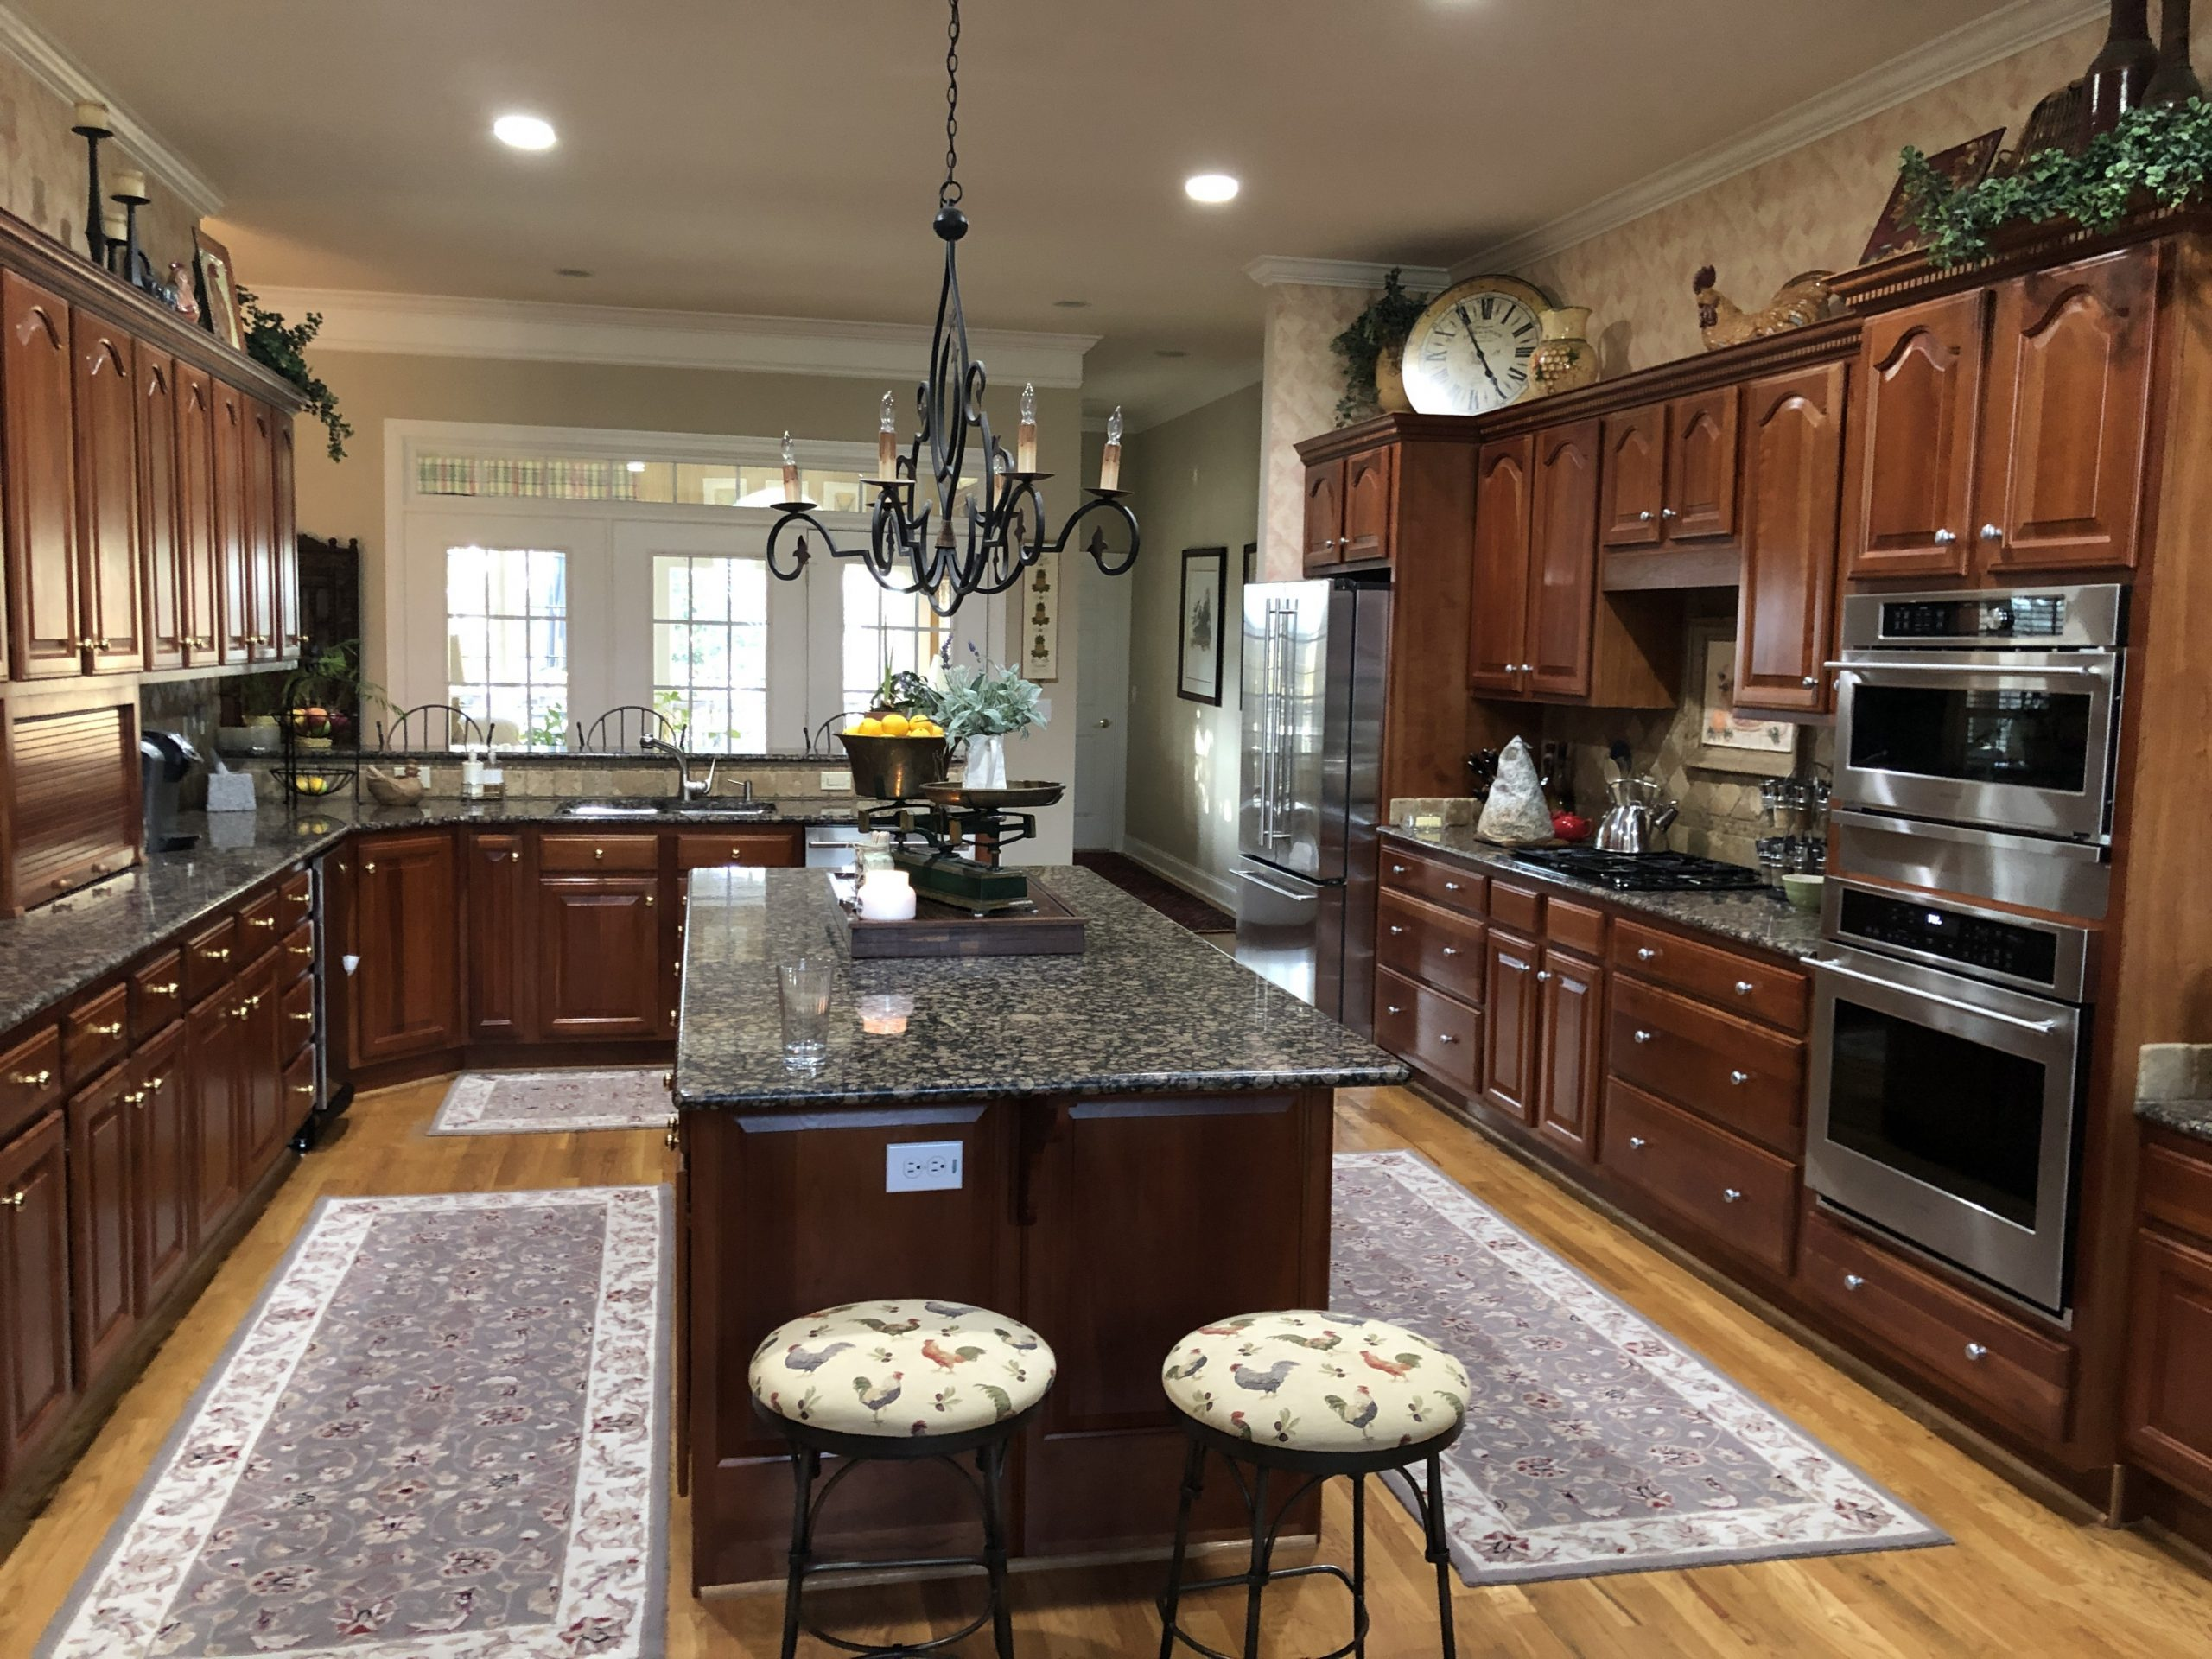 Traditional Kitchen Remodel- Bye Bye Cherry Cabinets - Bella Tucker - Kitchen Wall Paint Colors With Cherry Cabinets